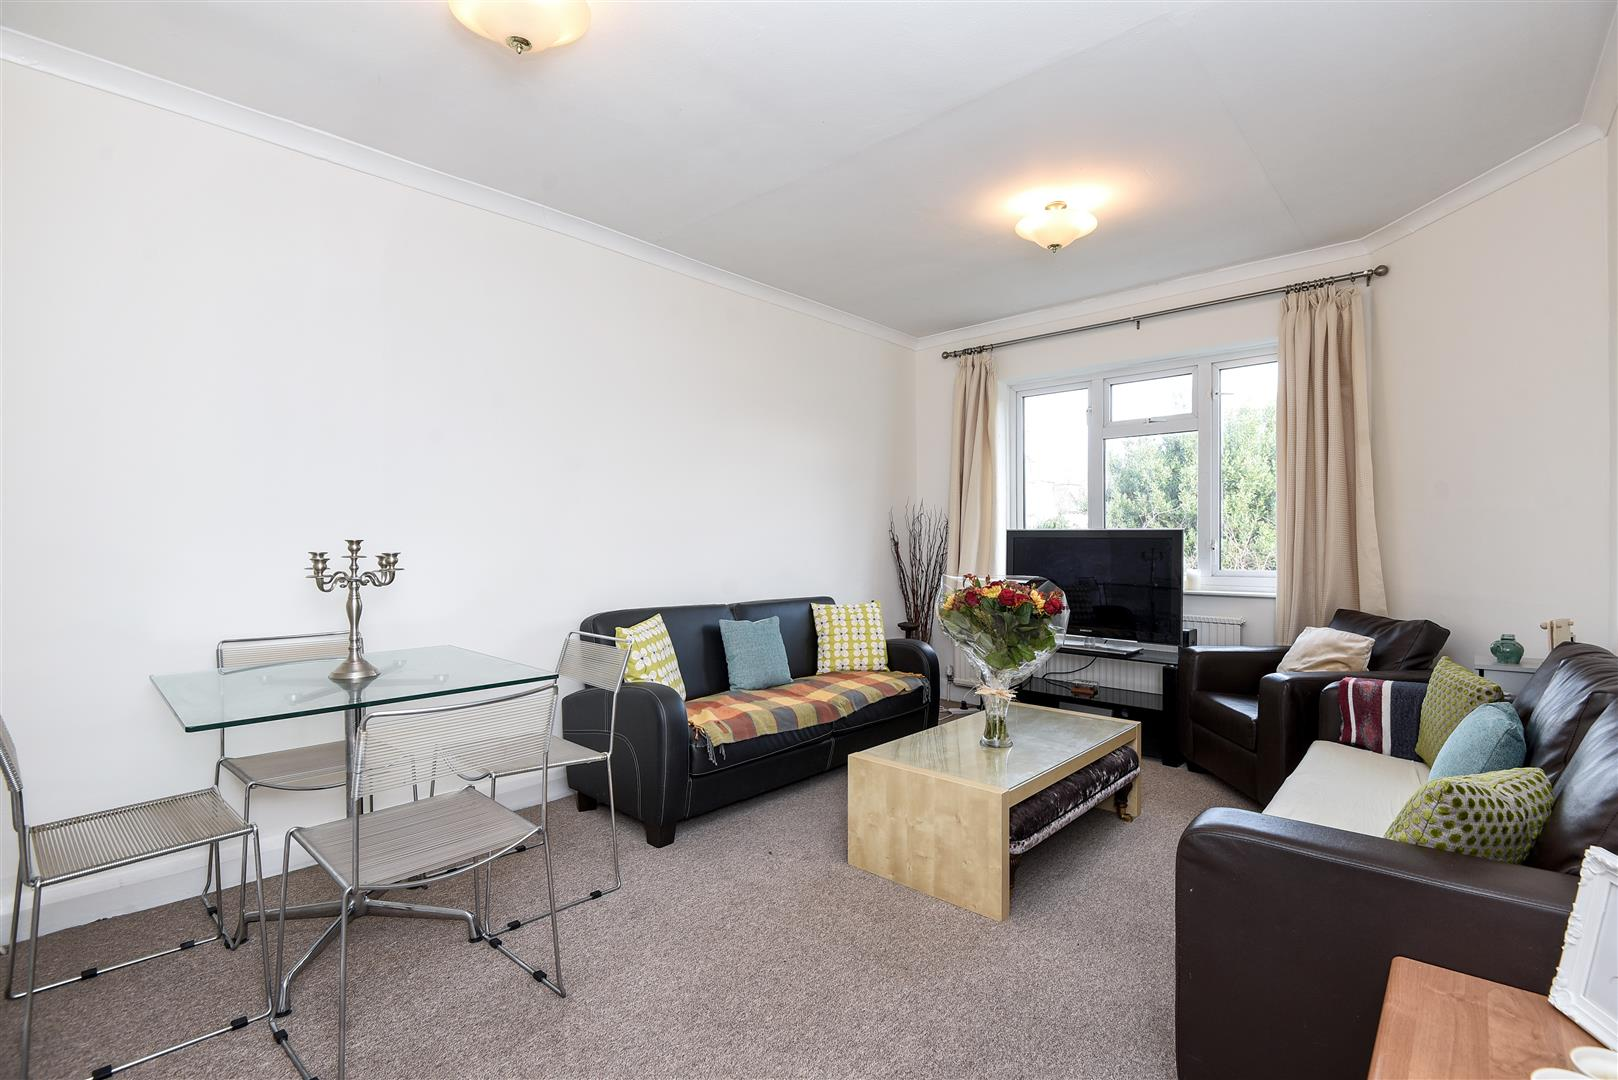 3 Bedrooms Flat for sale in Finchley Road, Golders Green, NW11